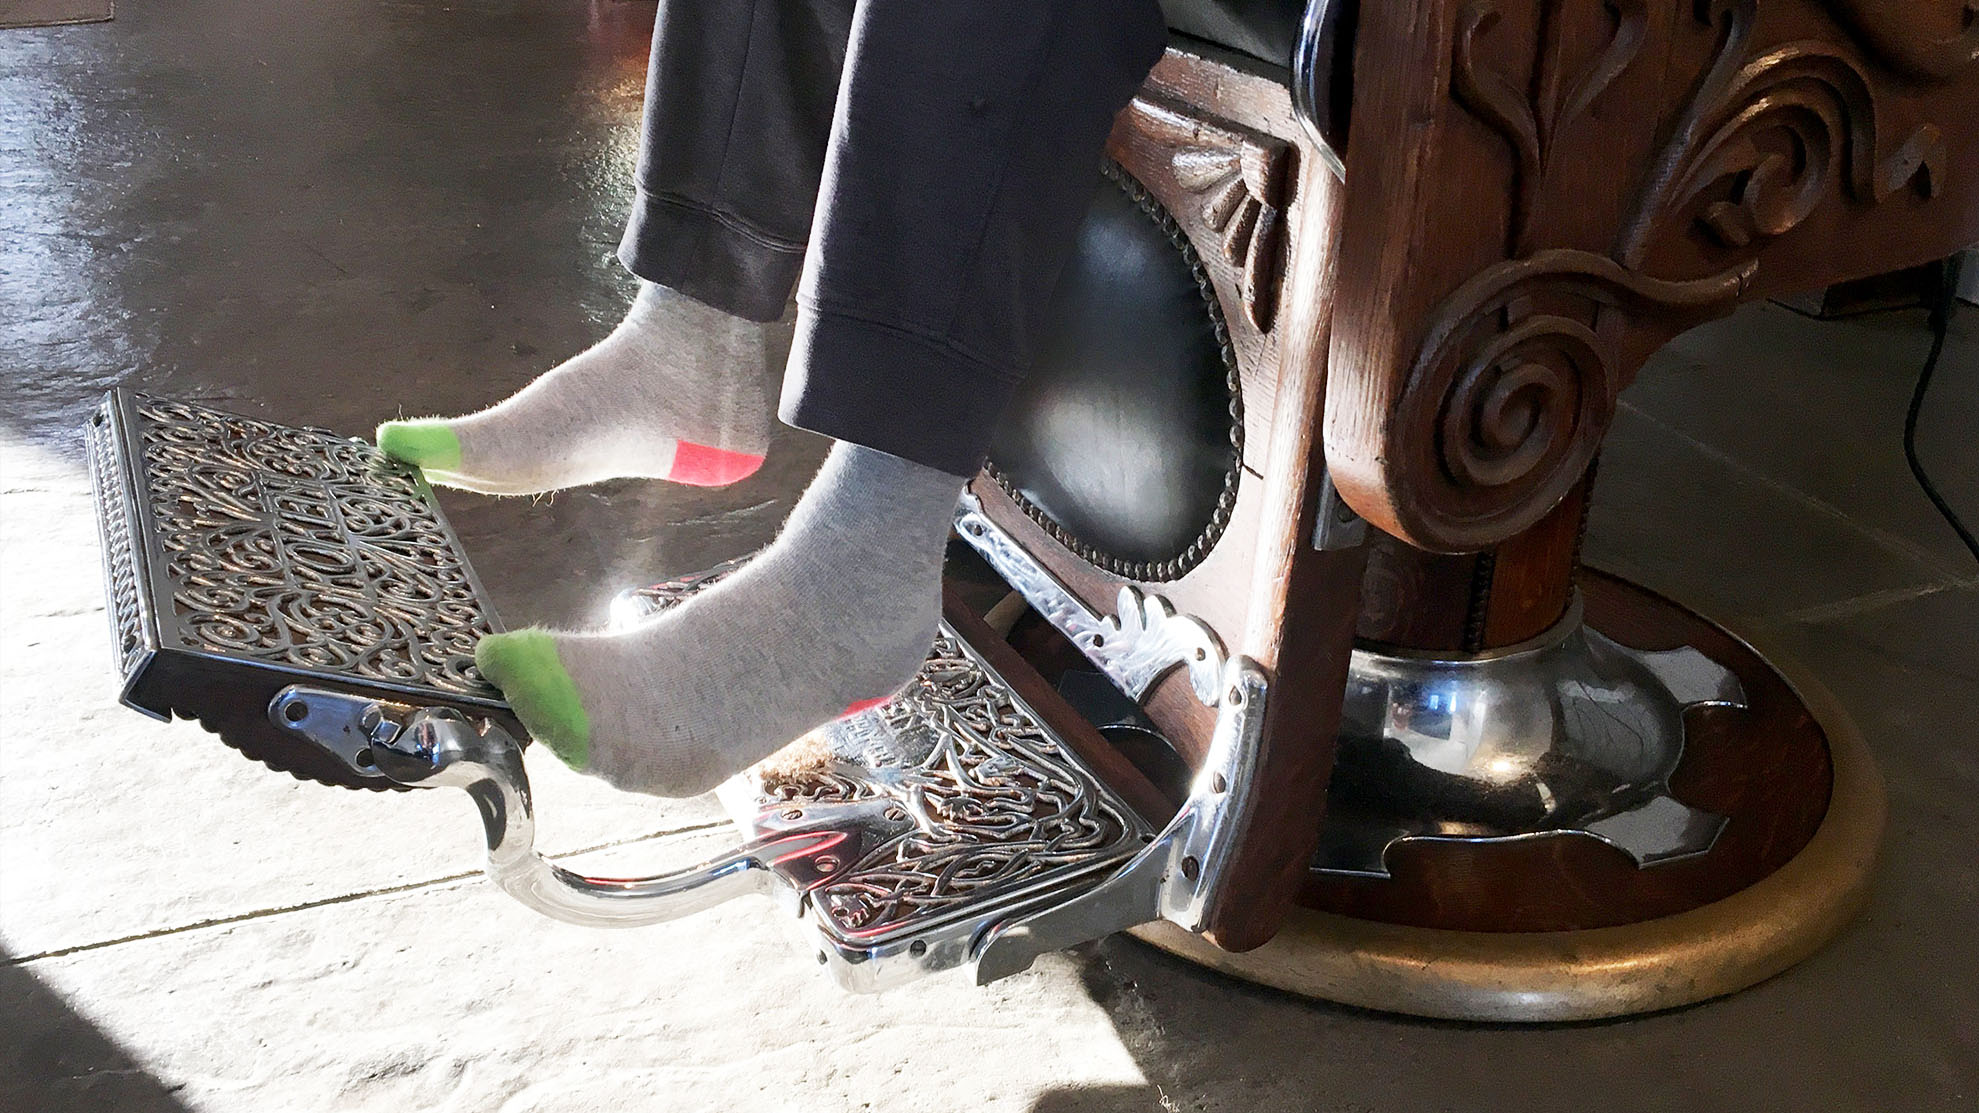 Eleven-year-old Josiah Brown's feet just reach the chrome foot pedal of Jack Desmond's barber chair.